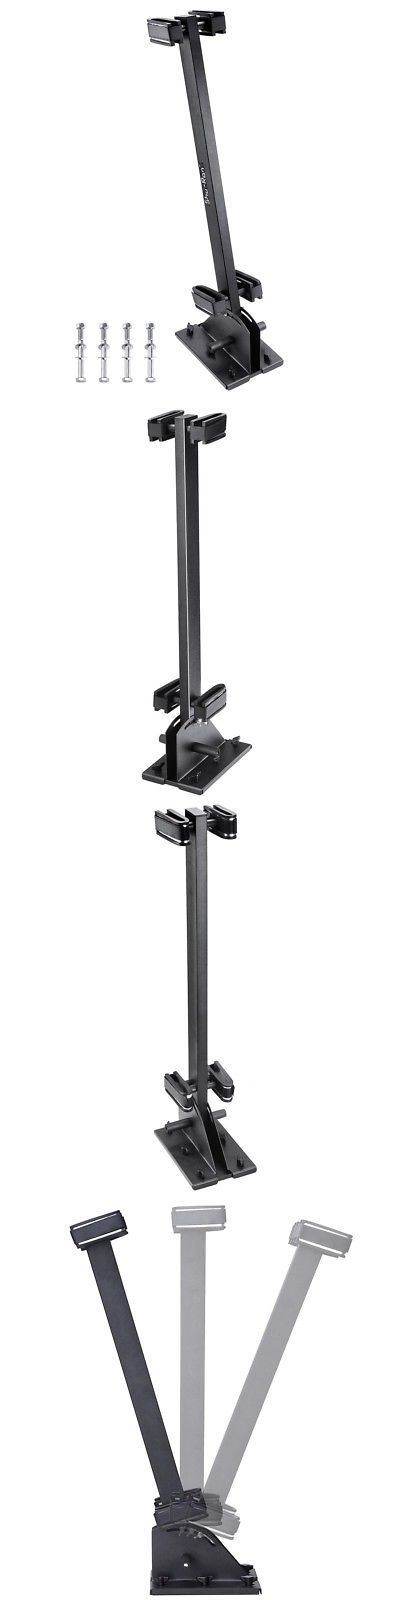 Push-Pull Golf Cart Parts 181154: Golf Cart Gun Rack Stand Up Gun Holder Stand Club Car Ezgo Yamaha Quick Release -> BUY IT NOW ONLY: $52.99 on eBay!